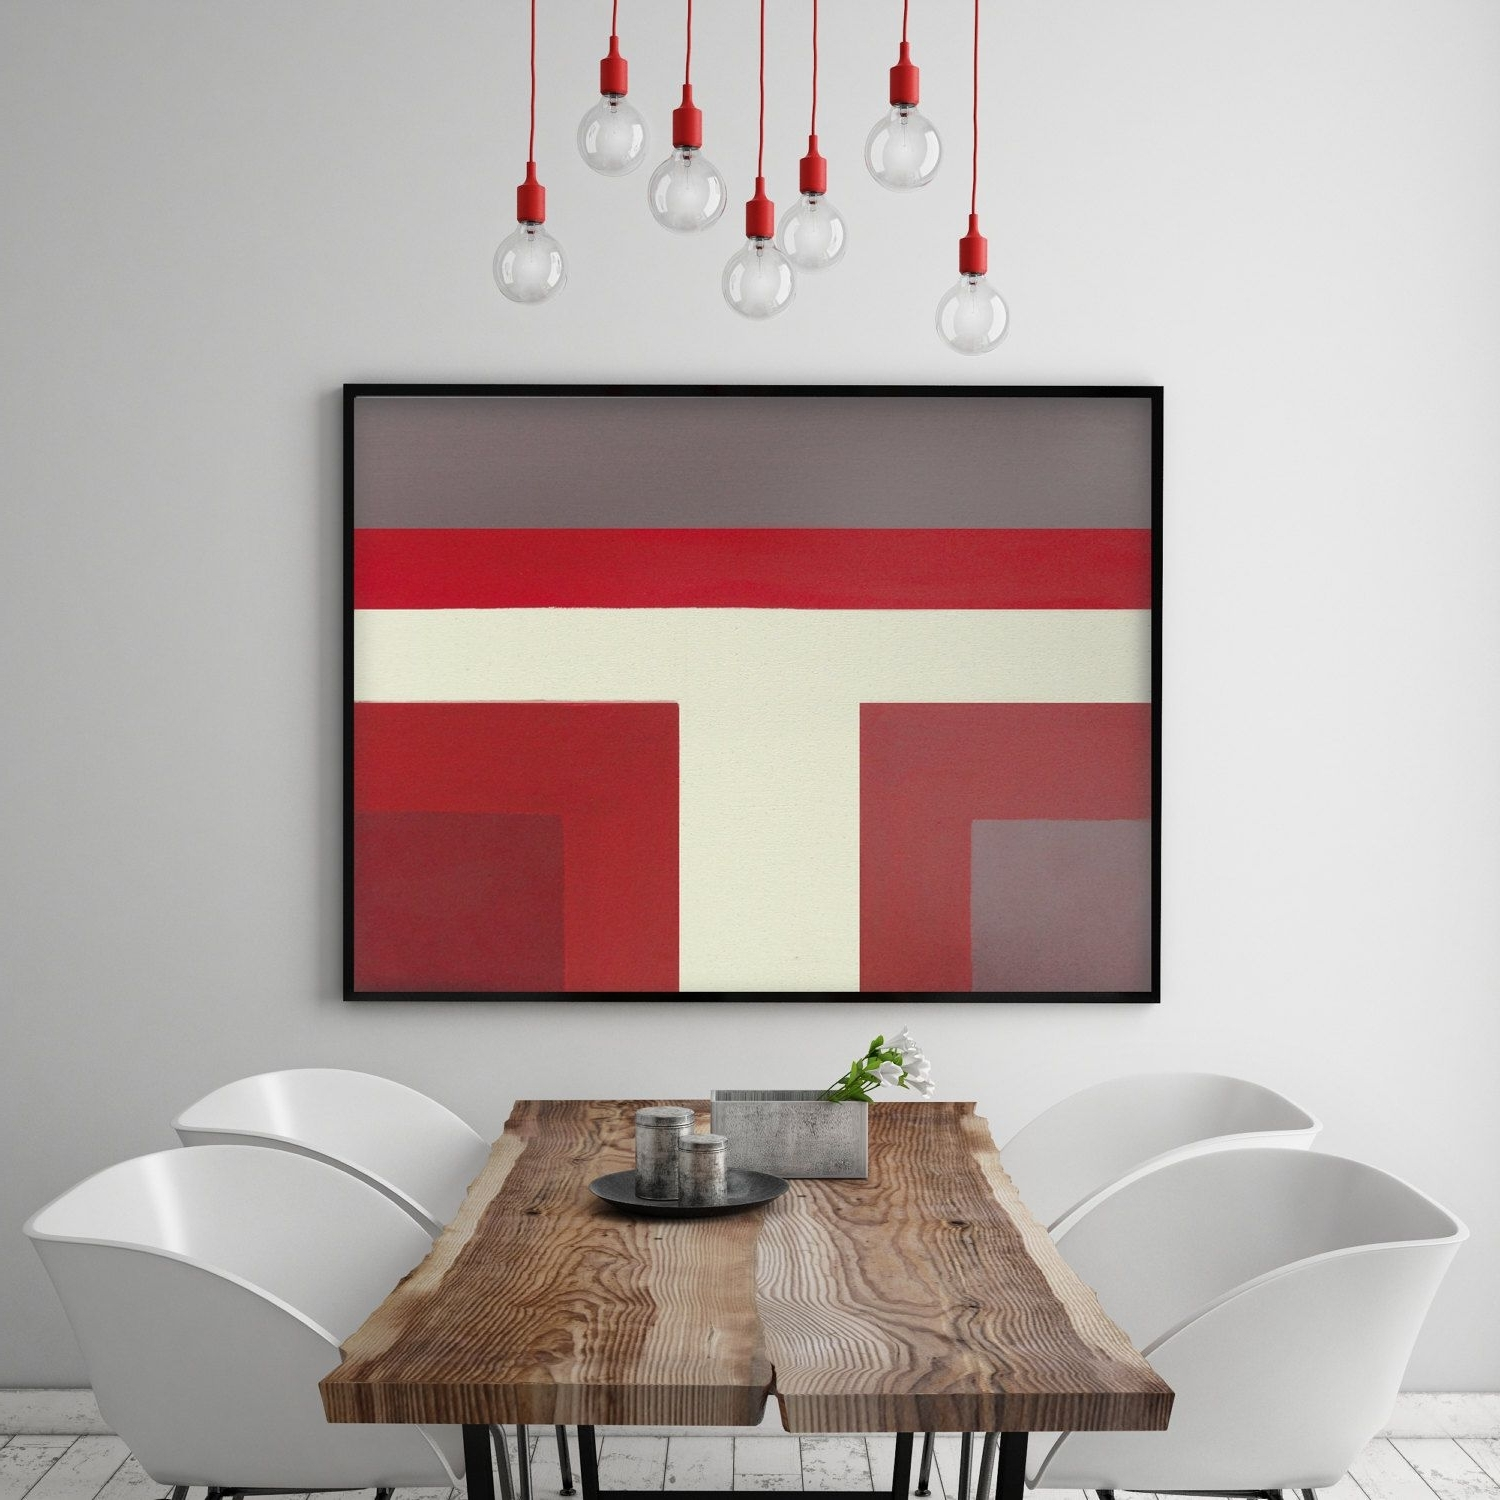 Widely Used Red Modern Abstract Color Block Painting Burgundy Maroon White Gray Inside Burgundy Wall Art (View 8 of 15)